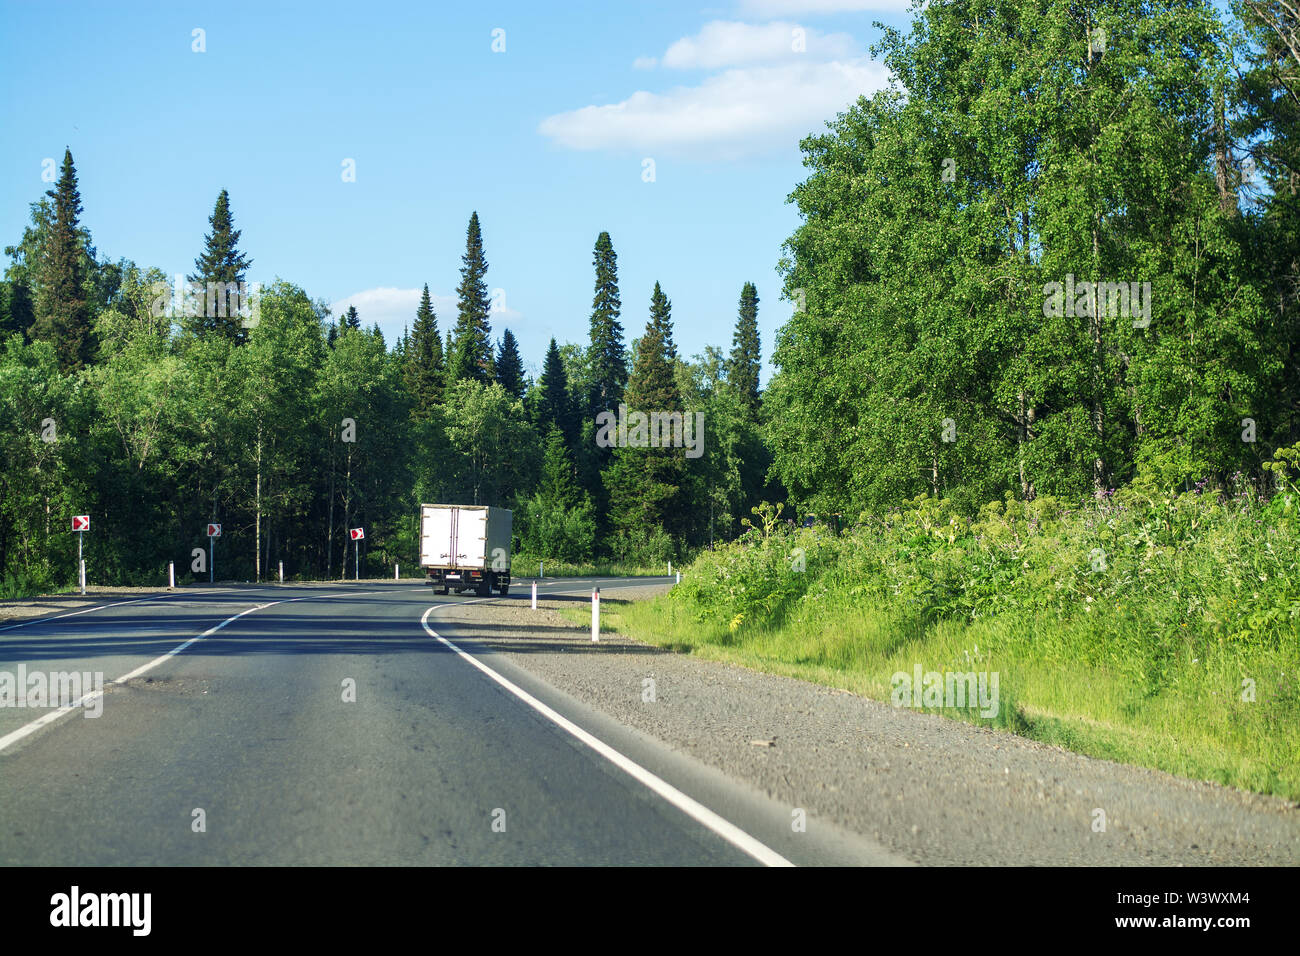 Asphalt road going through the forest on a summer sunny day. Around the green trees and Christmas trees. Clear blue sky. Horizontal photo. Journey - Stock Image